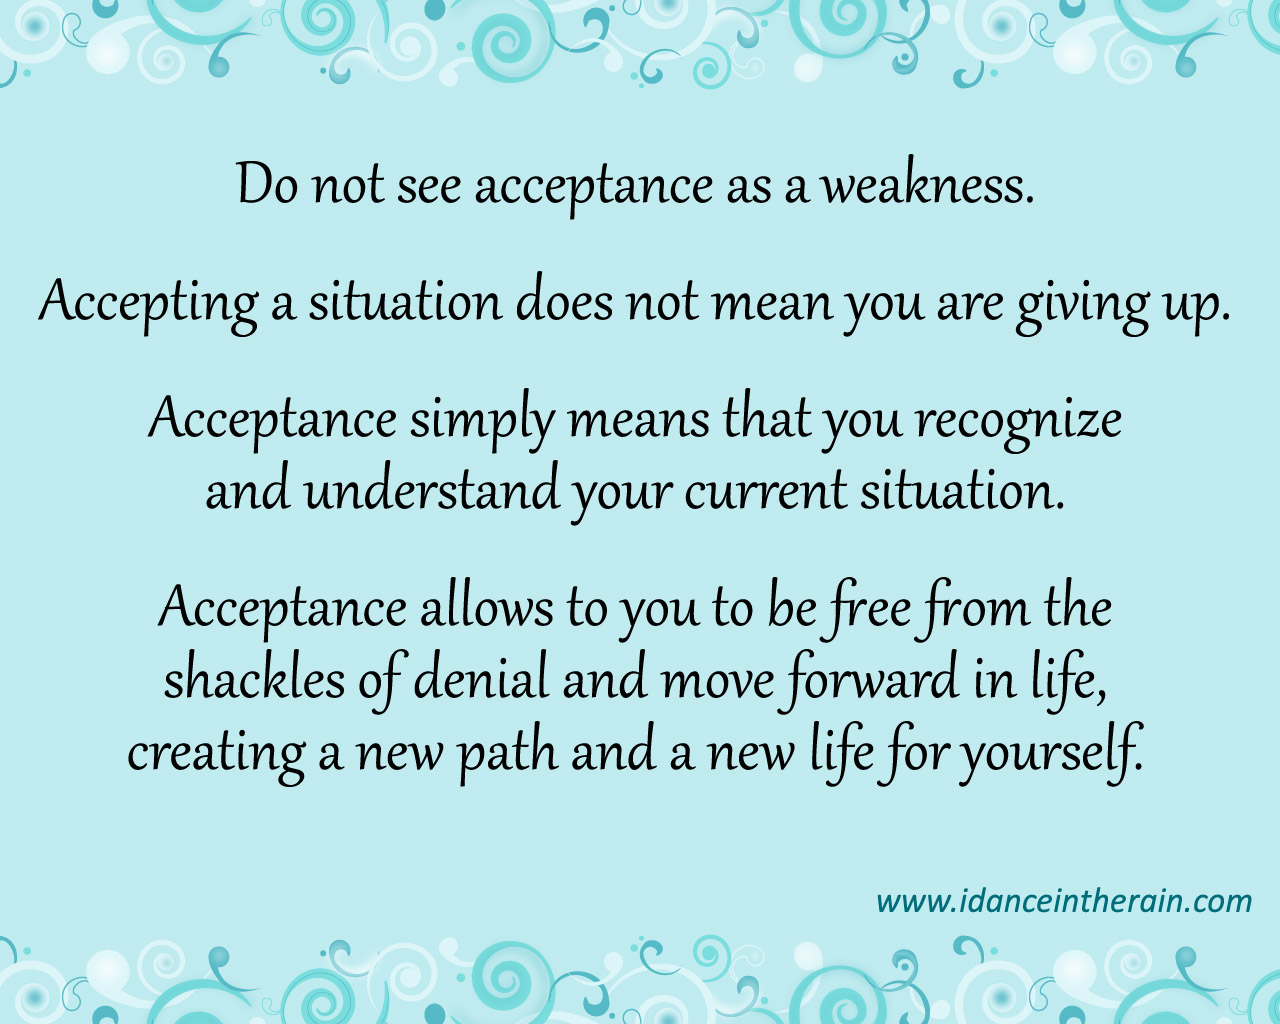 67 Top Acceptance Quotes And Sayings